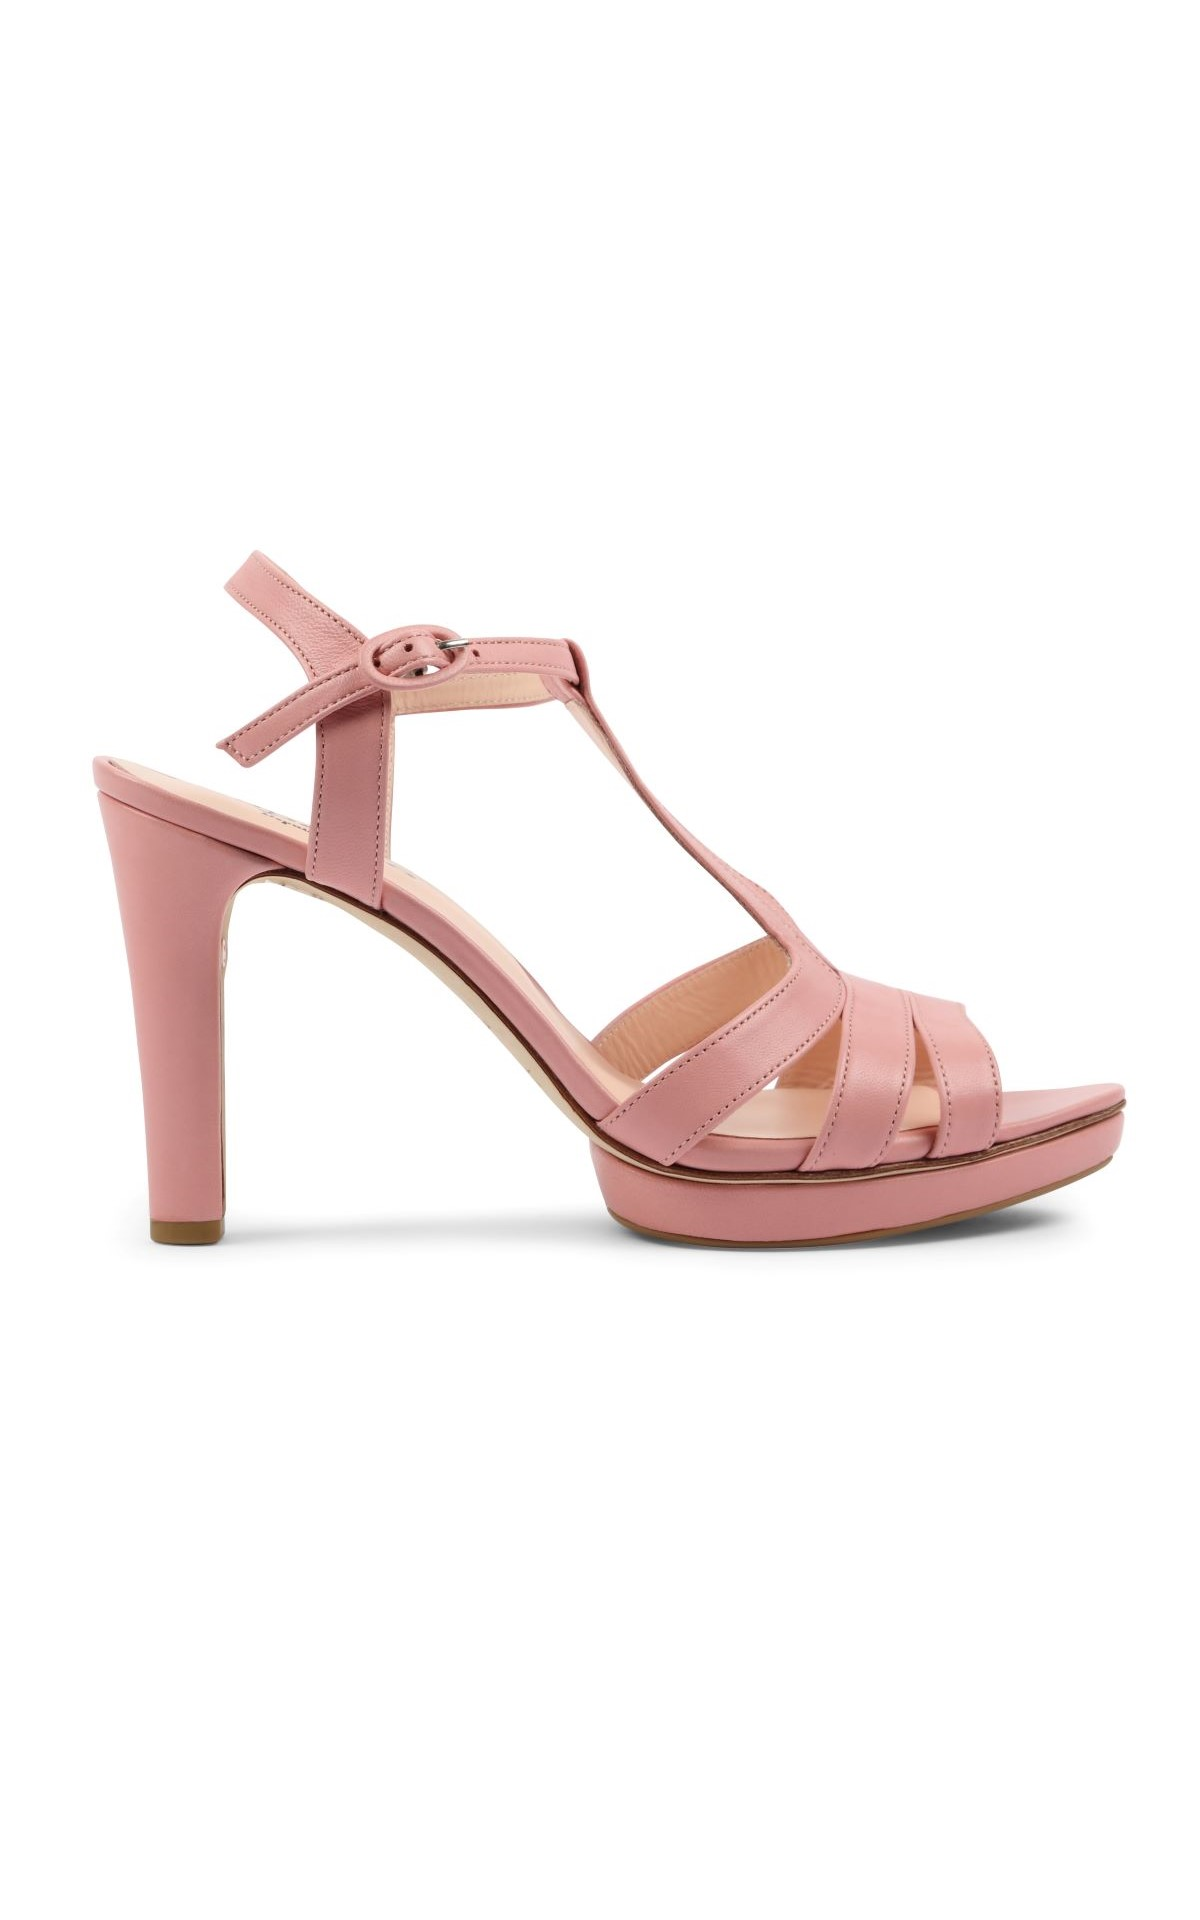 La Vallée Village Repetto Bikini sandal